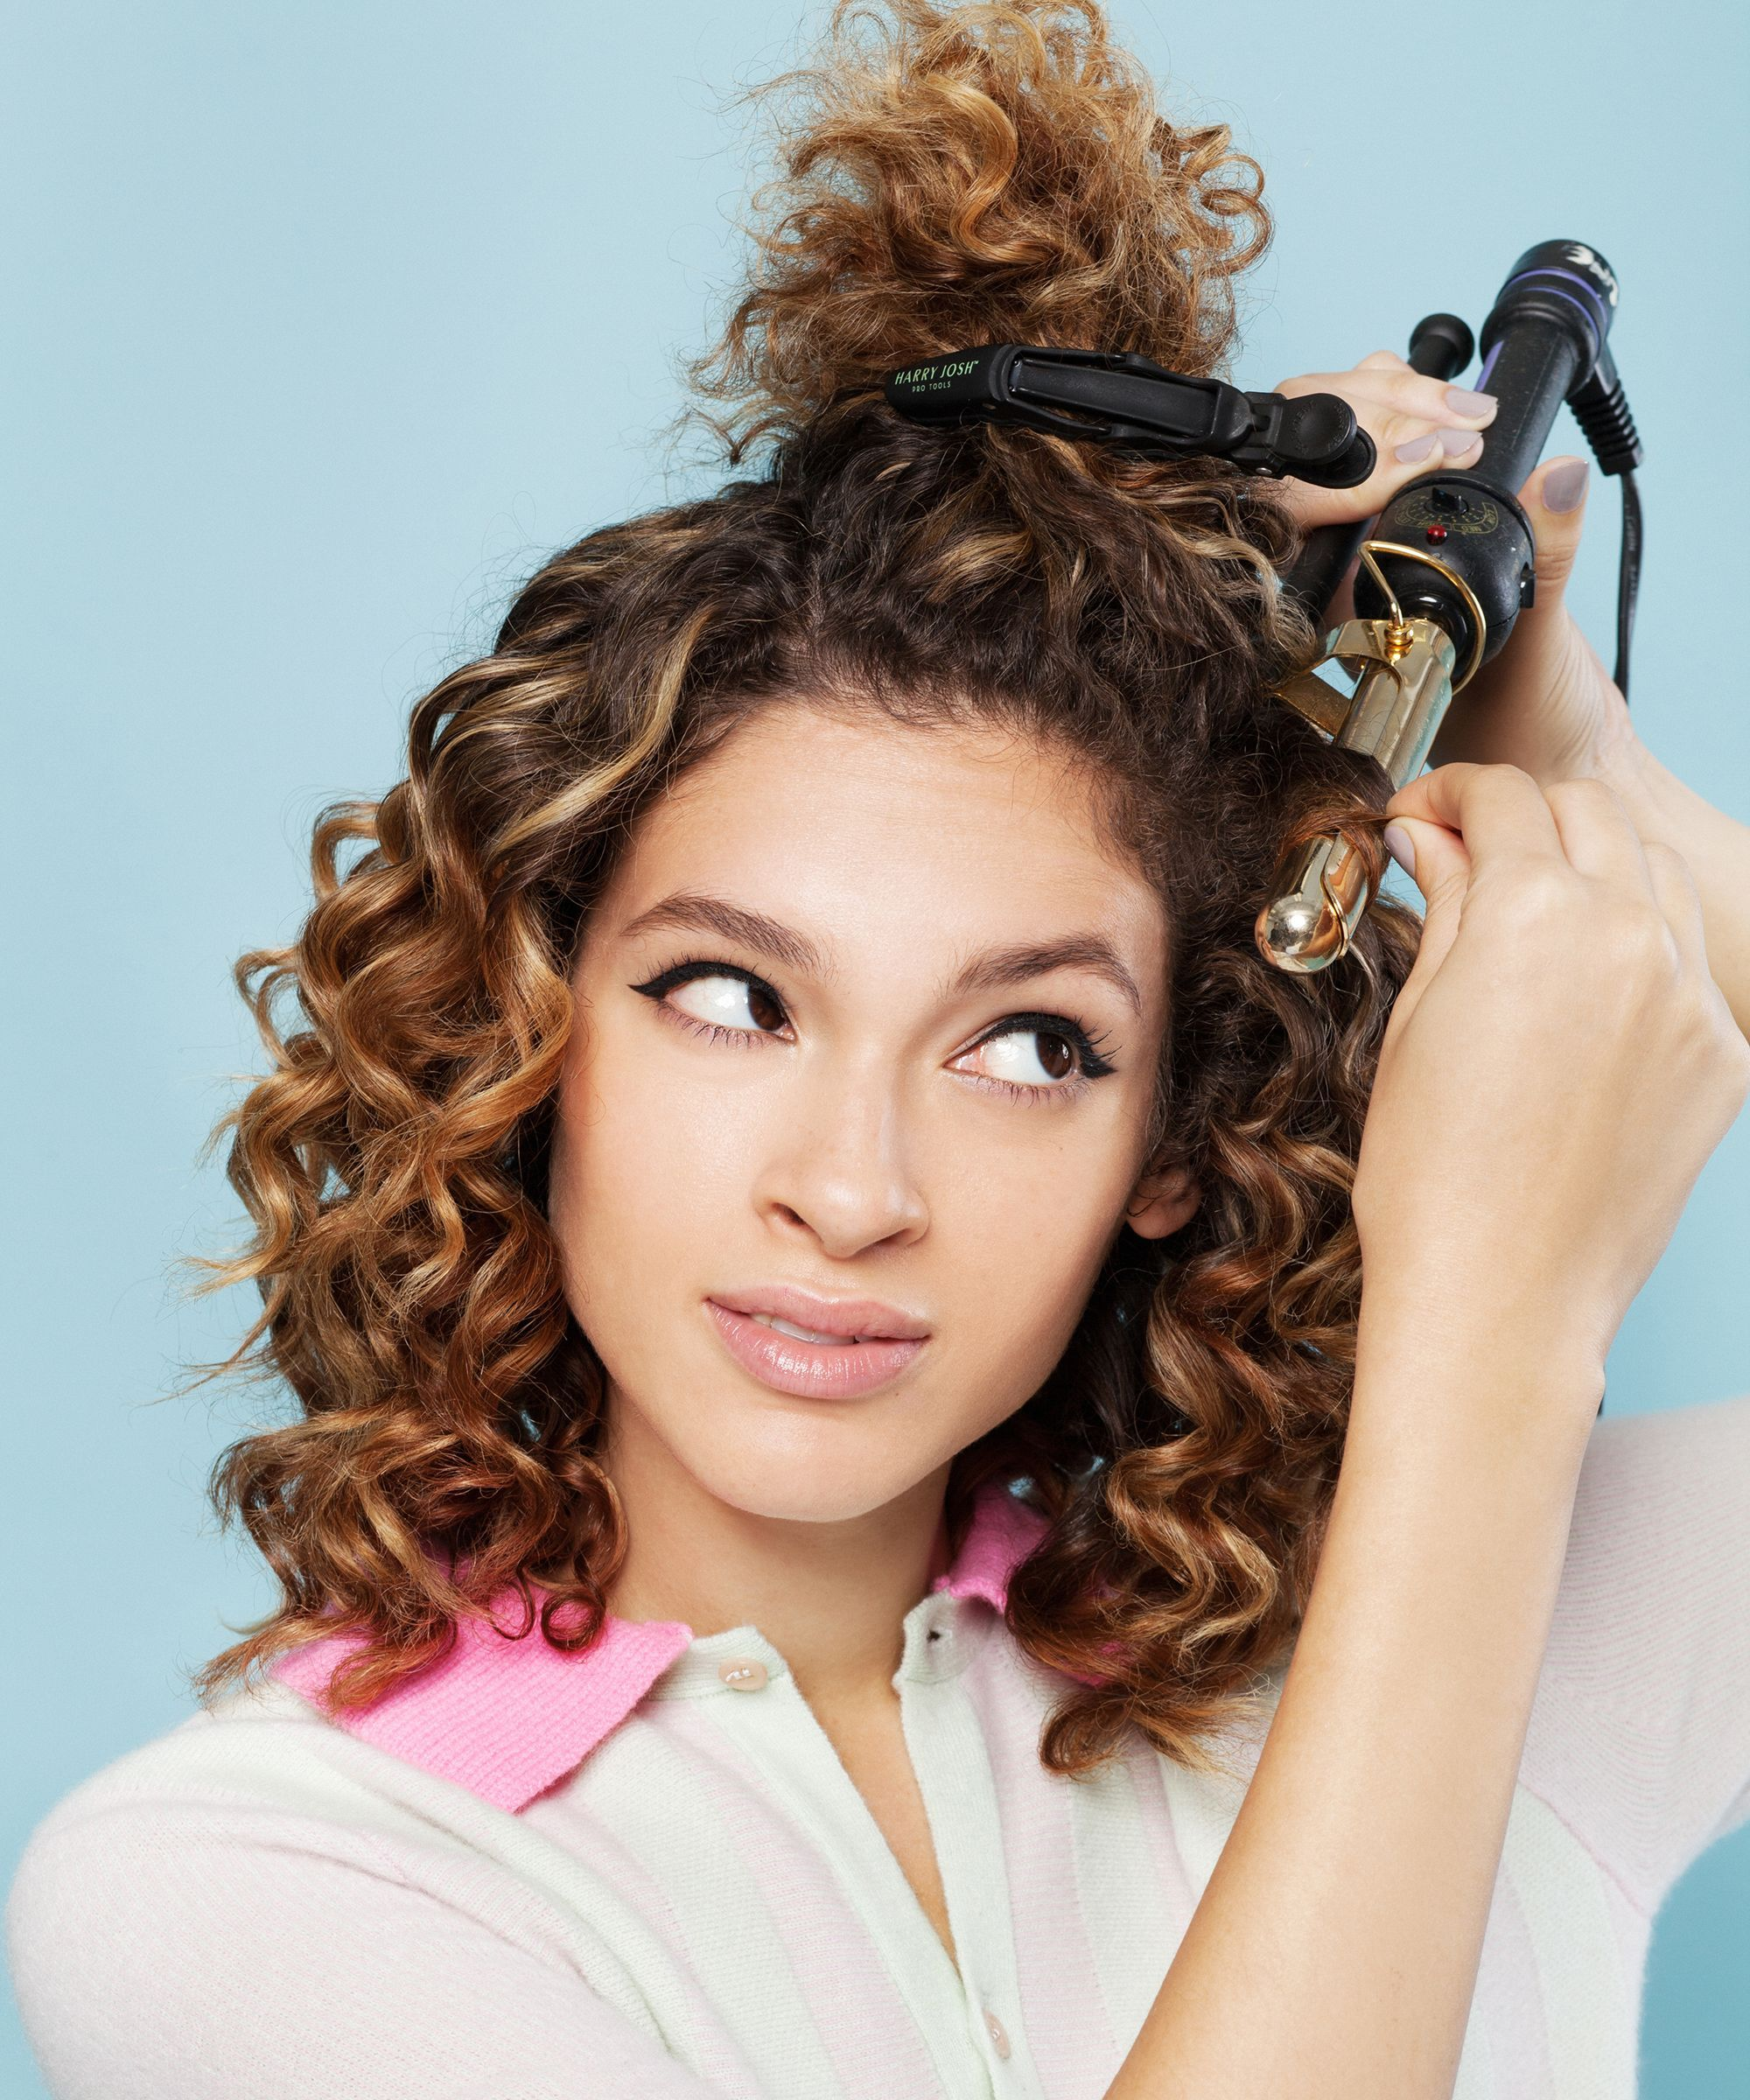 Styles For Curly Hair Captivating 3 Chic & Easy Styles For Girls With Curls  Beautiful Hairstyles